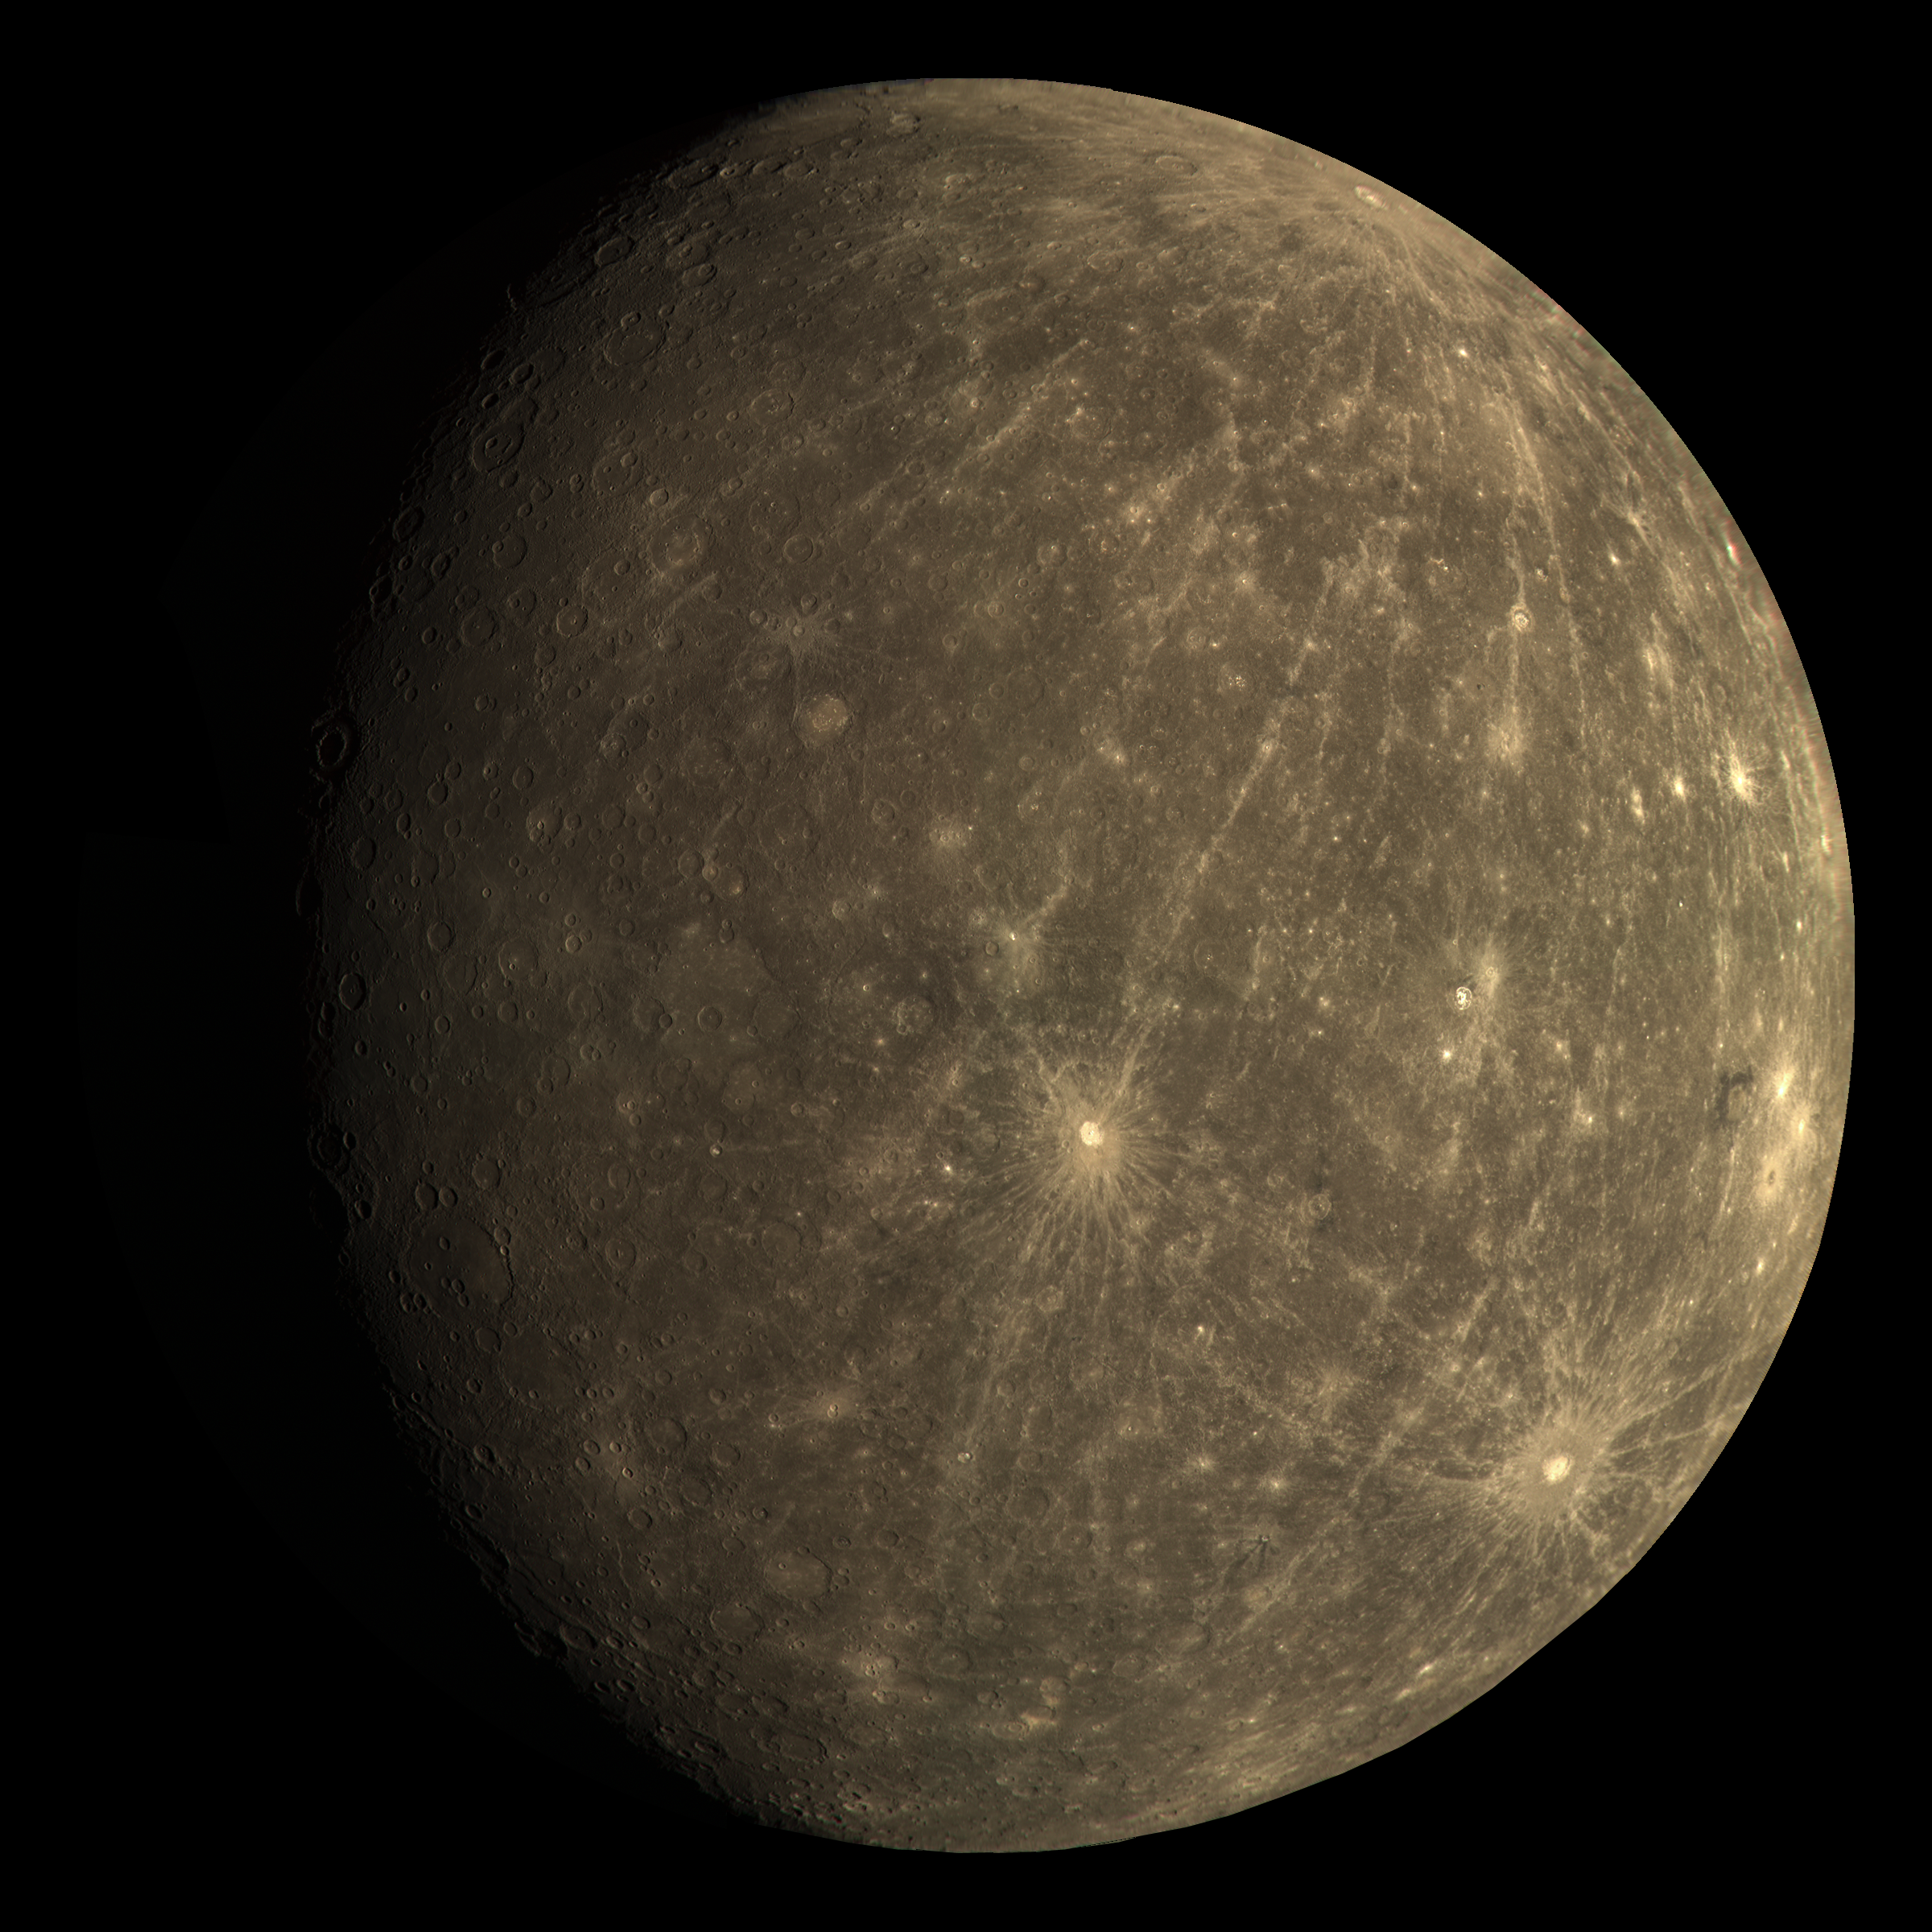 mercury planet size and color - photo #2